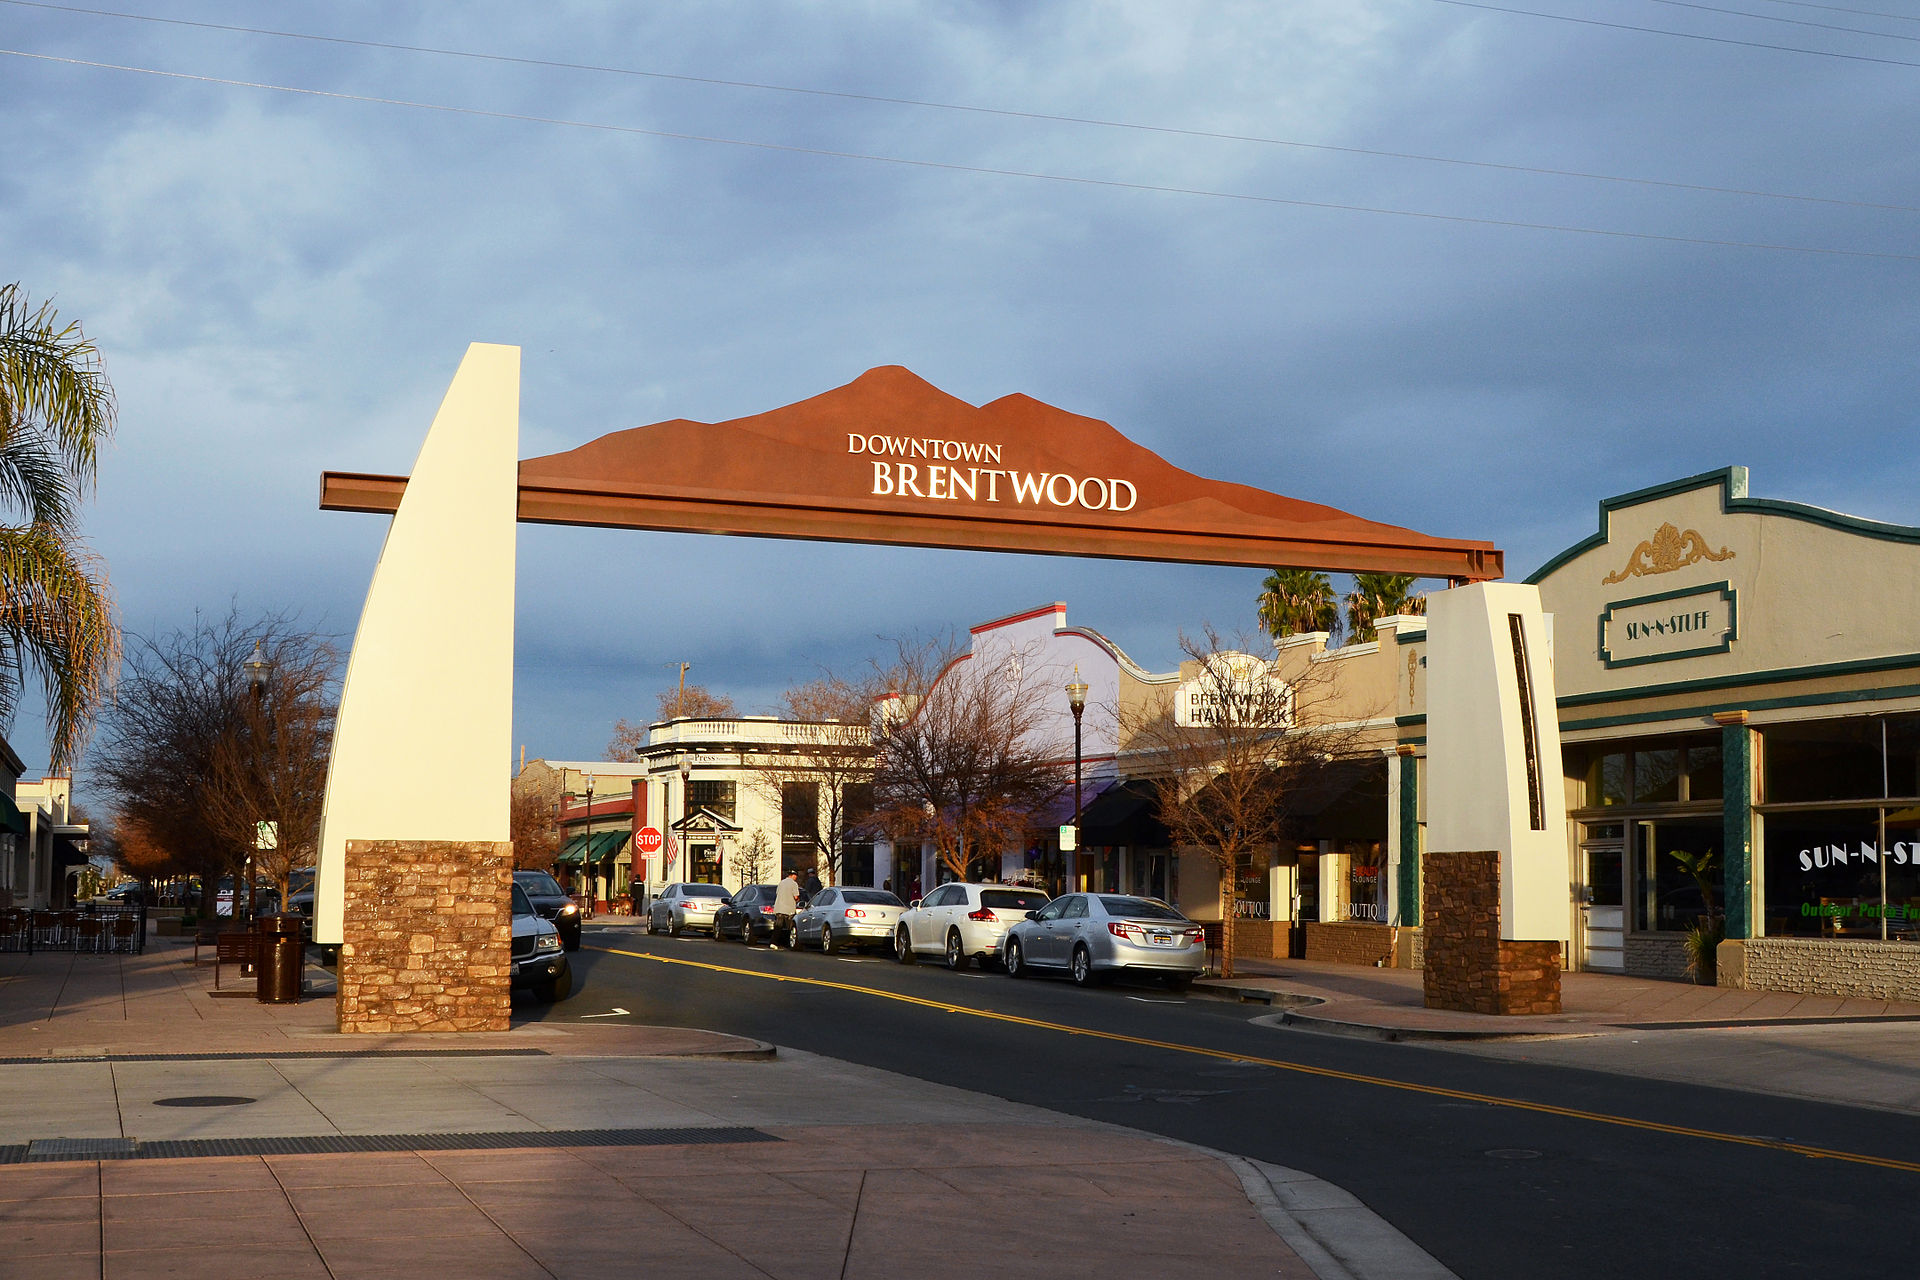 Brentwood wikidata for The brentwood